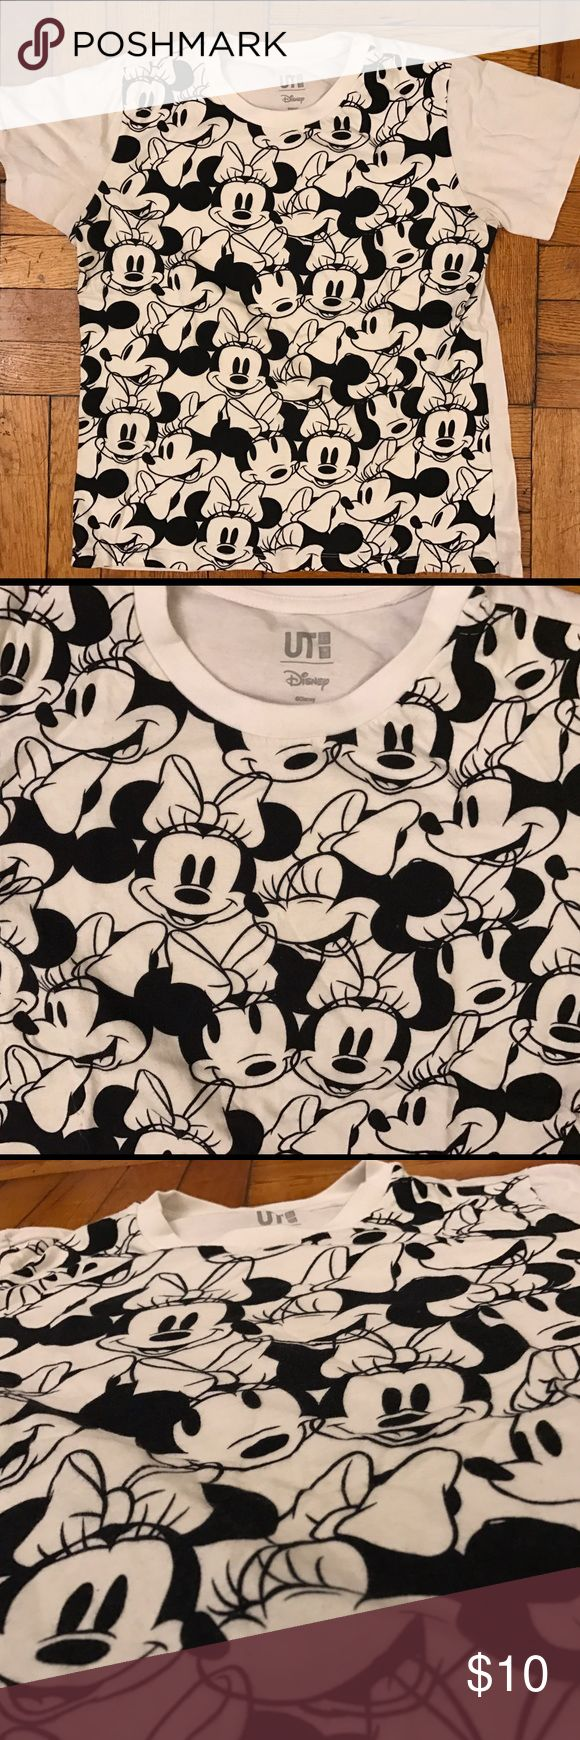 Uniqlo x Disney Minnie Mouse Shirt This is a black and white Minnie Mouse printed t-shirt from the limited edition Uniqlo x Disney collection this past fall. I used this item 5x max and just don't find myself wearing it so I want it to bring joy into someone else's life. The item is in great condition. If you have any questions please leave a comment for me below. :) Uniqlo Tops Tees - Short Sleeve